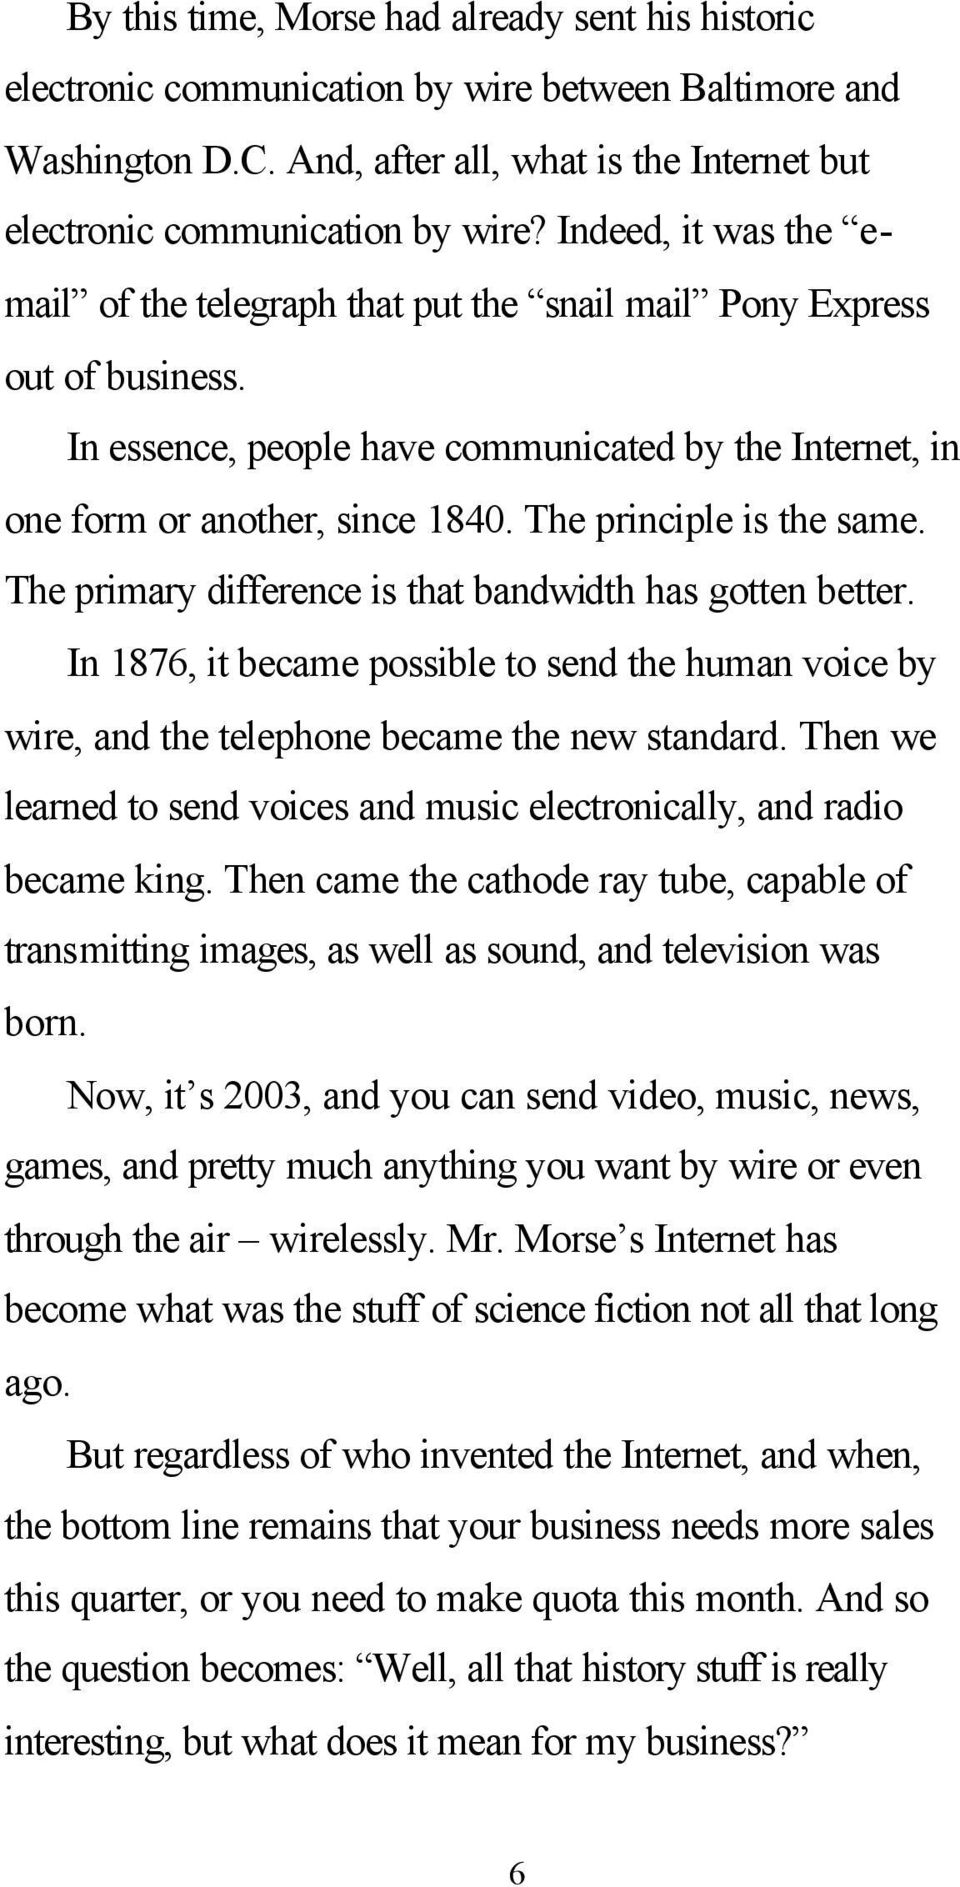 The principle is the same. The primary difference is that bandwidth has gotten better. In 1876, it became possible to send the human voice by wire, and the telephone became the new standard.